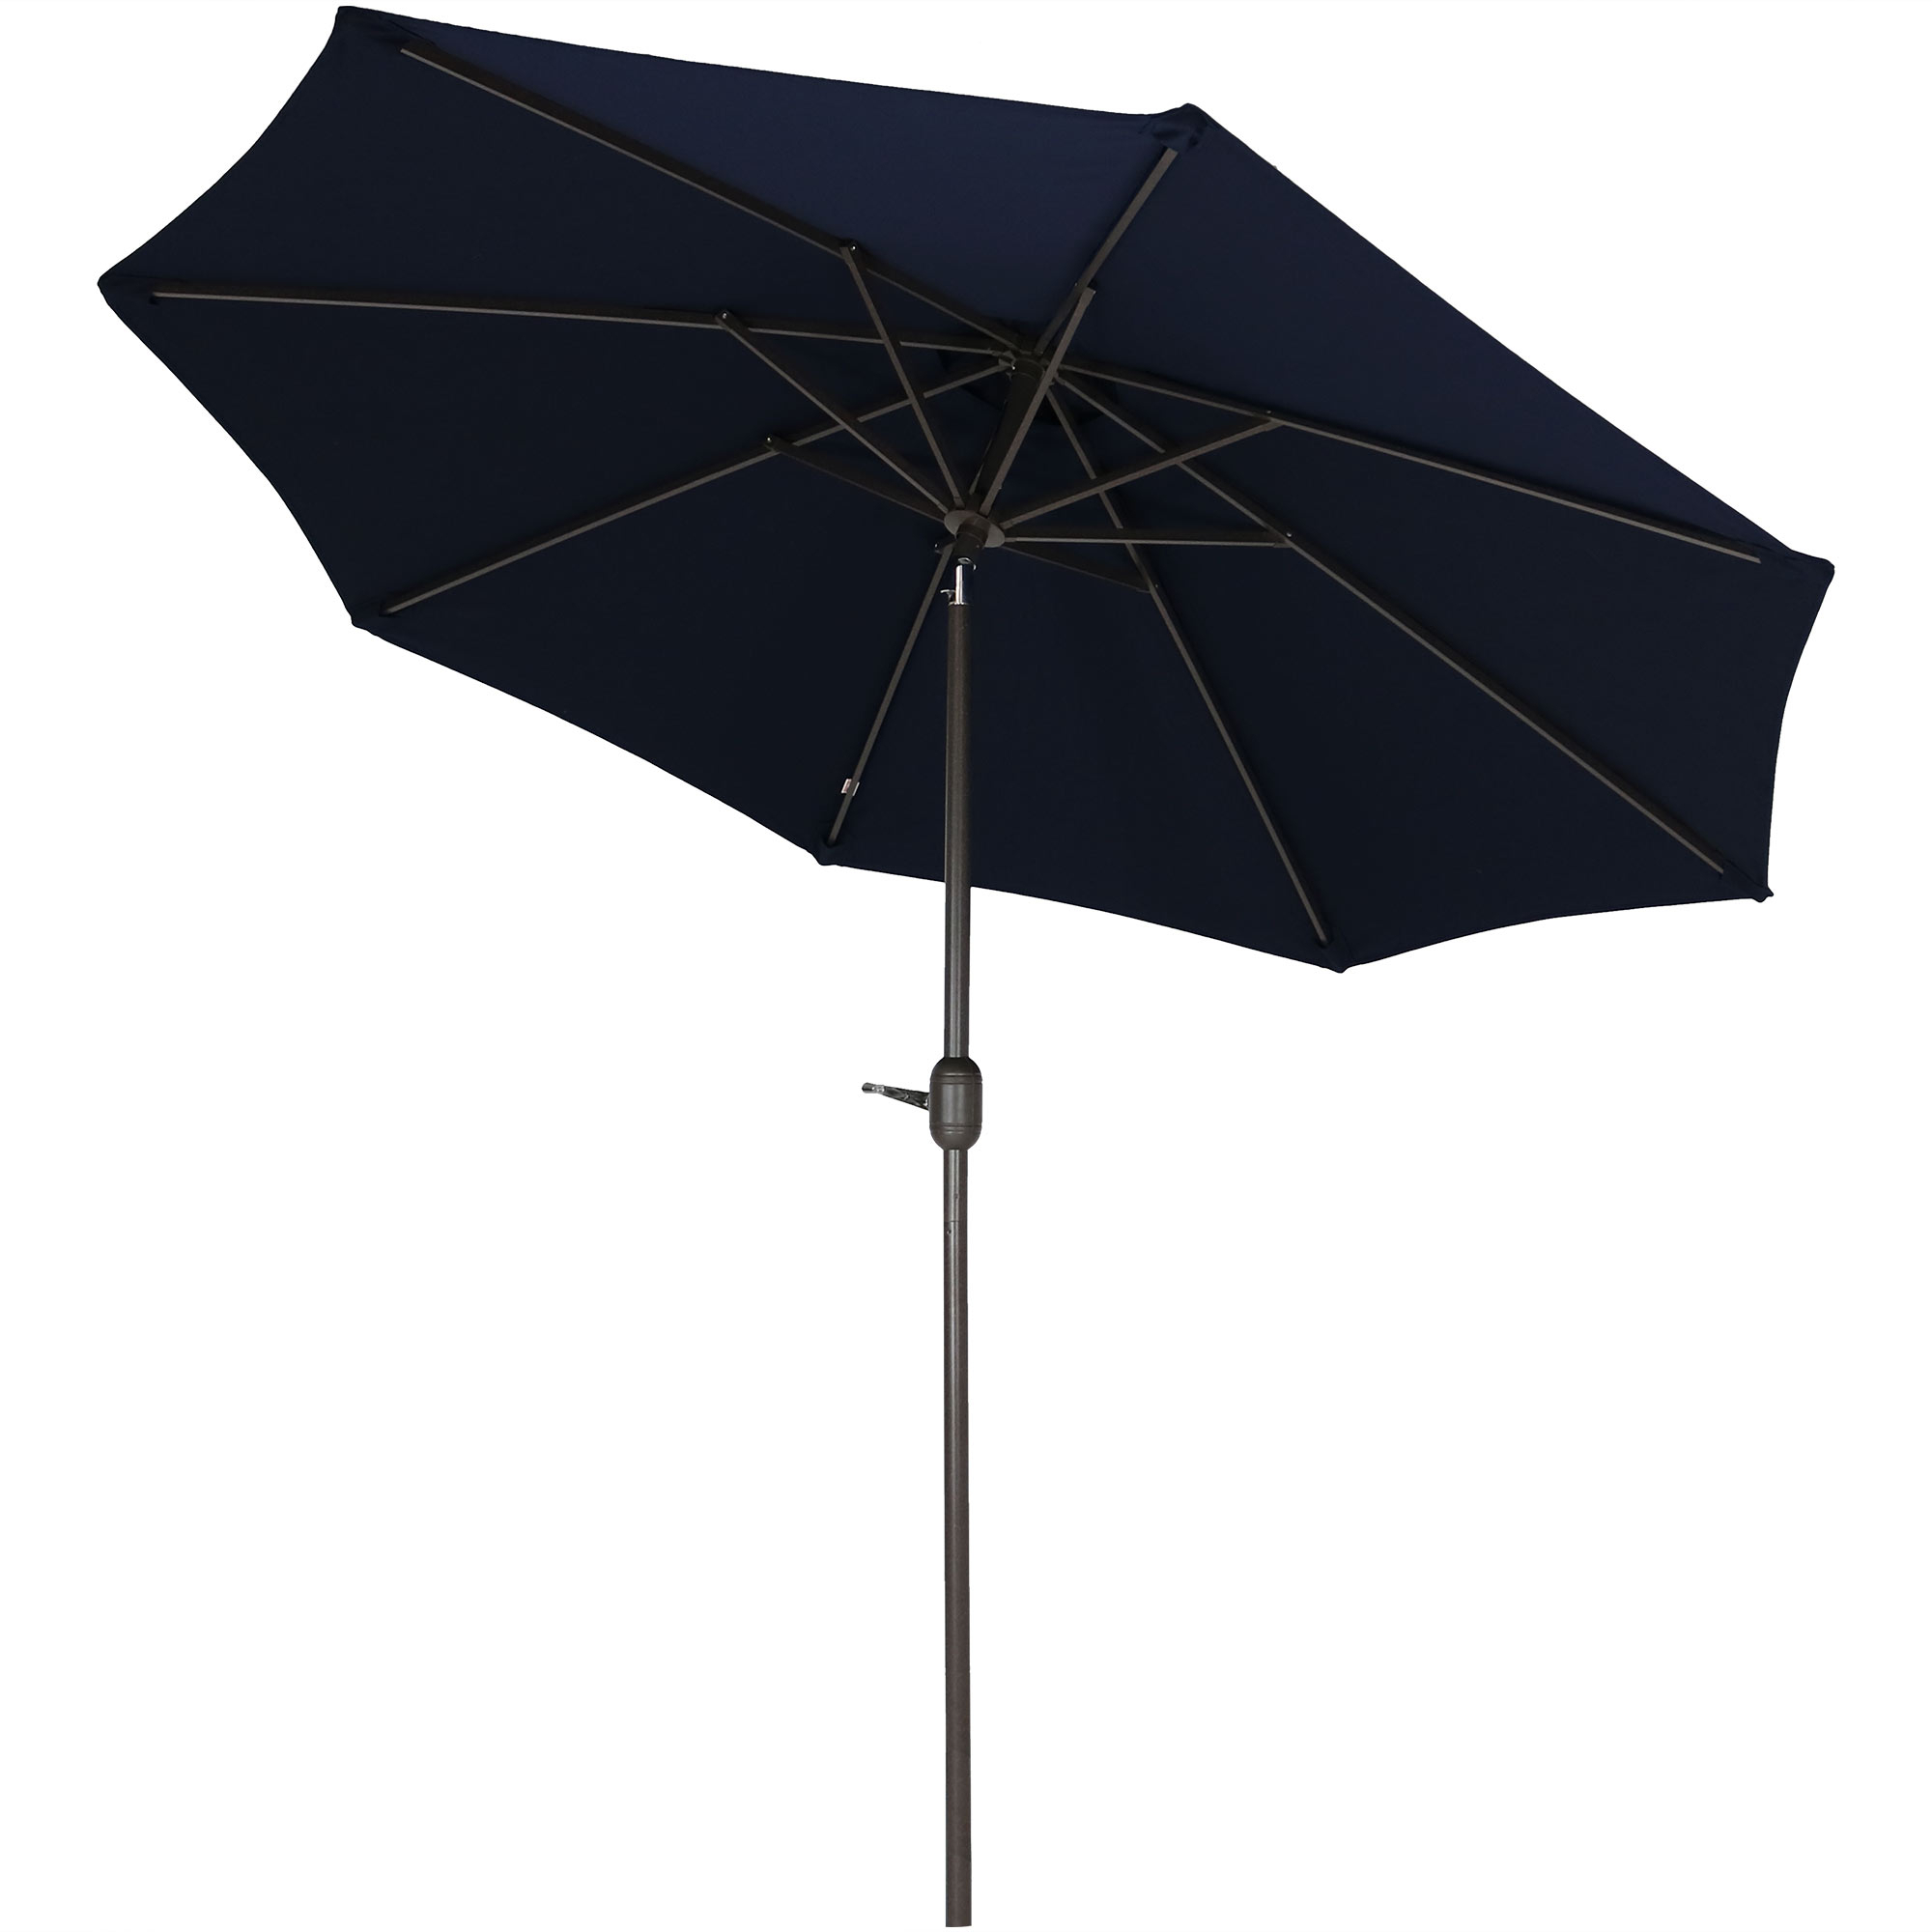 Sunnydaze Sunbrella Patio Umbrella With Auto Tilt And Crank, 9 Foot Outdoor Market Umbrella, Rust Resistant Aluminum, Sunbrella Beige Throughout Well Liked Julian Market Sunbrella Umbrellas (View 17 of 20)